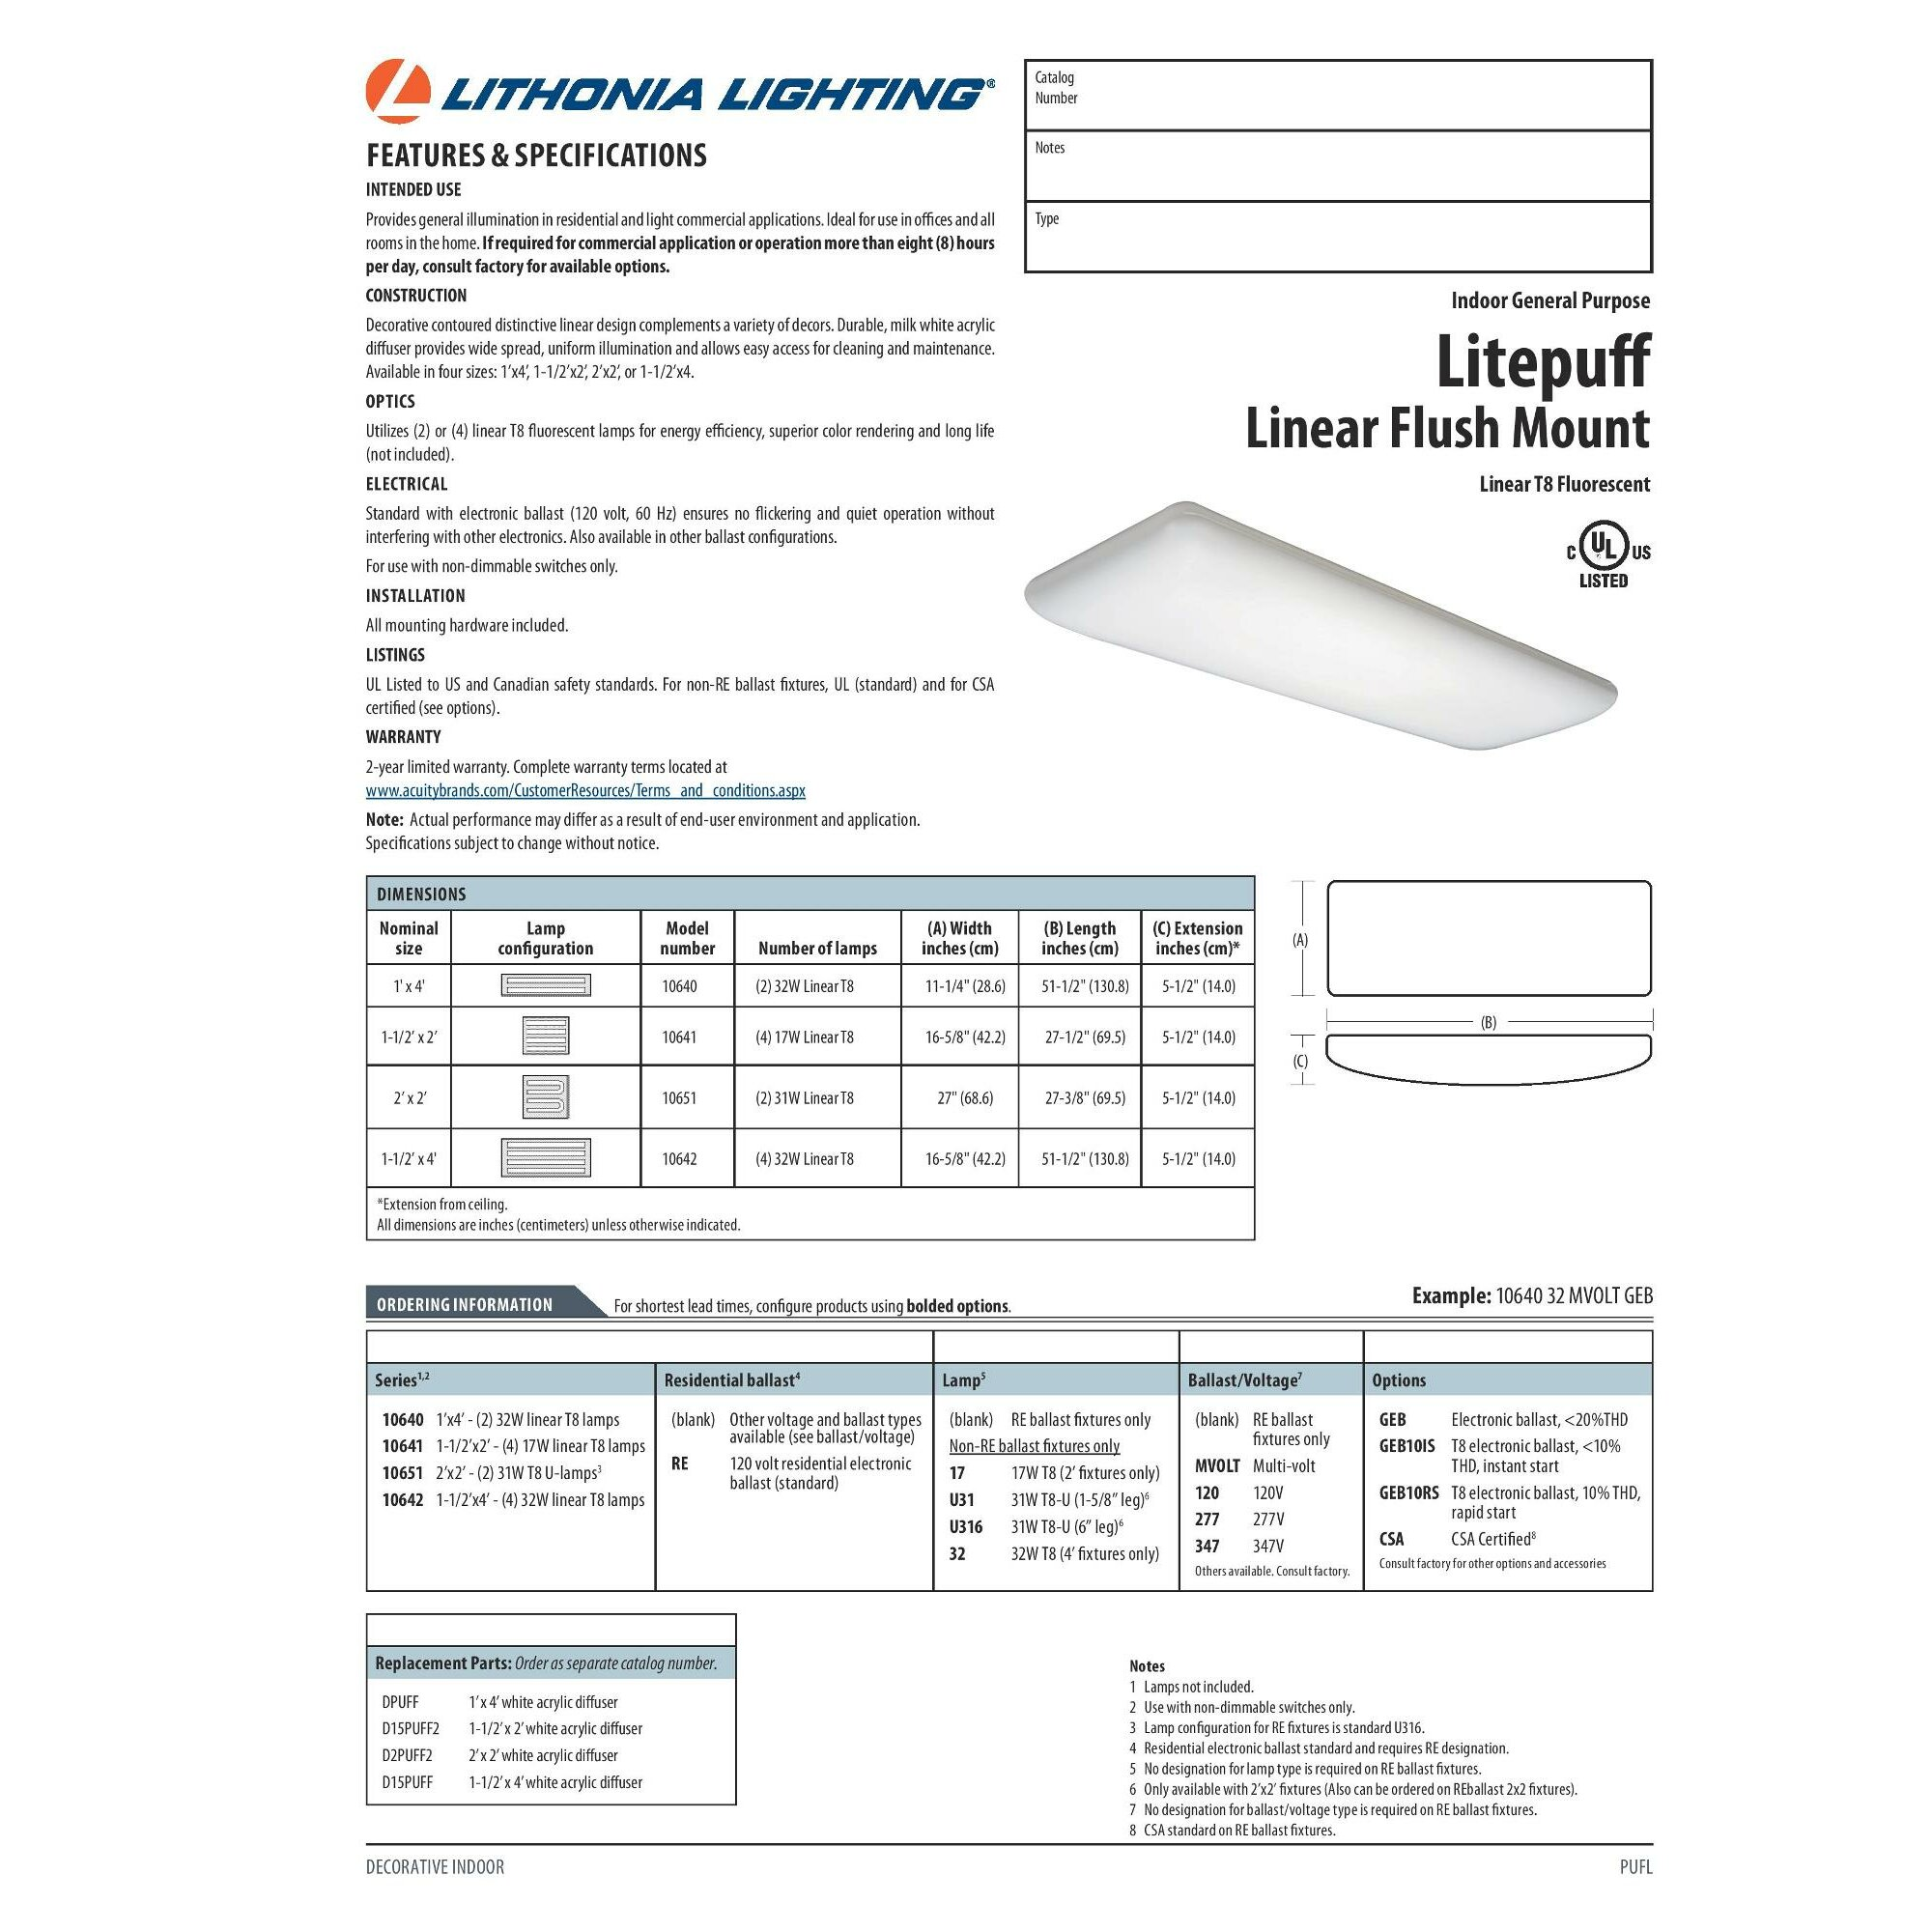 lithonia lighting w litepuff linear light flush mount lithonia lighting 32w litepuff linear 4 light flush mount